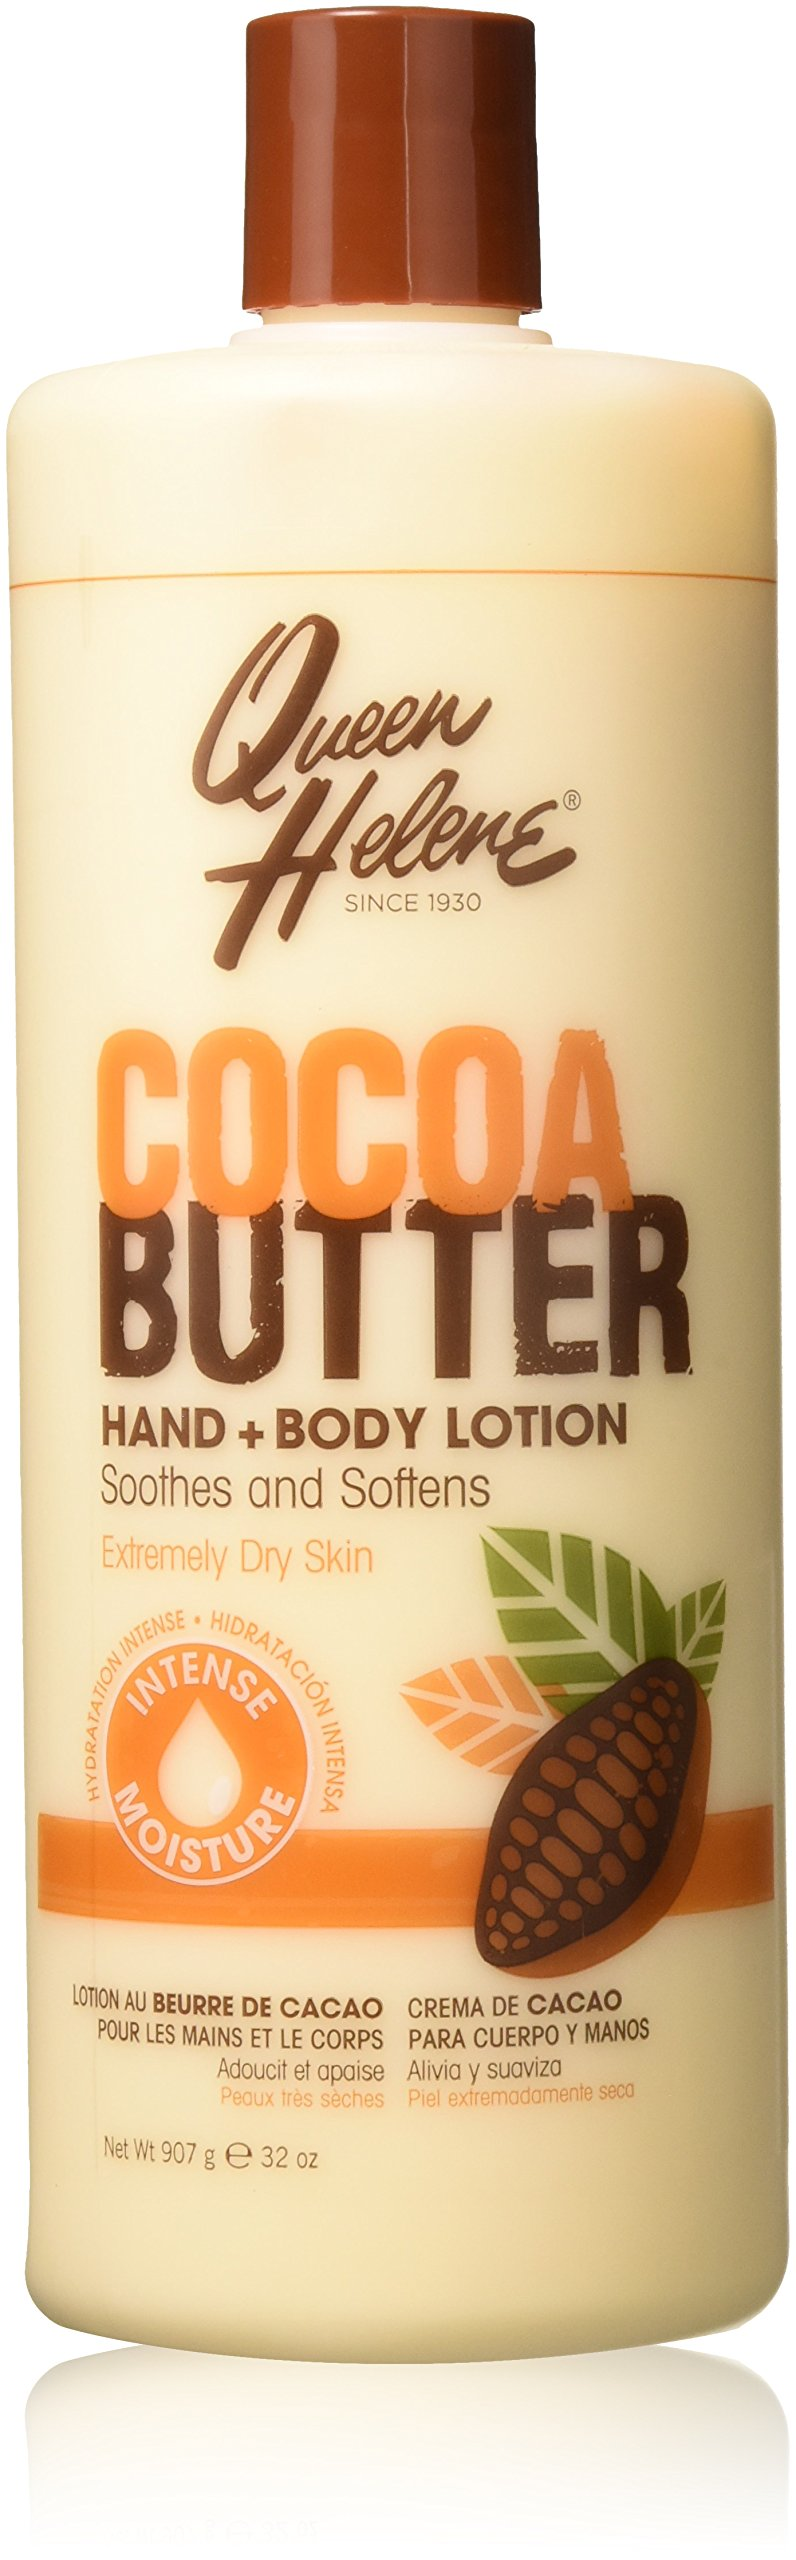 Queen Helene Lotion 32oz Cocoa Butter Hand & Body by Queen Helene pack of 2 by Queen Helene